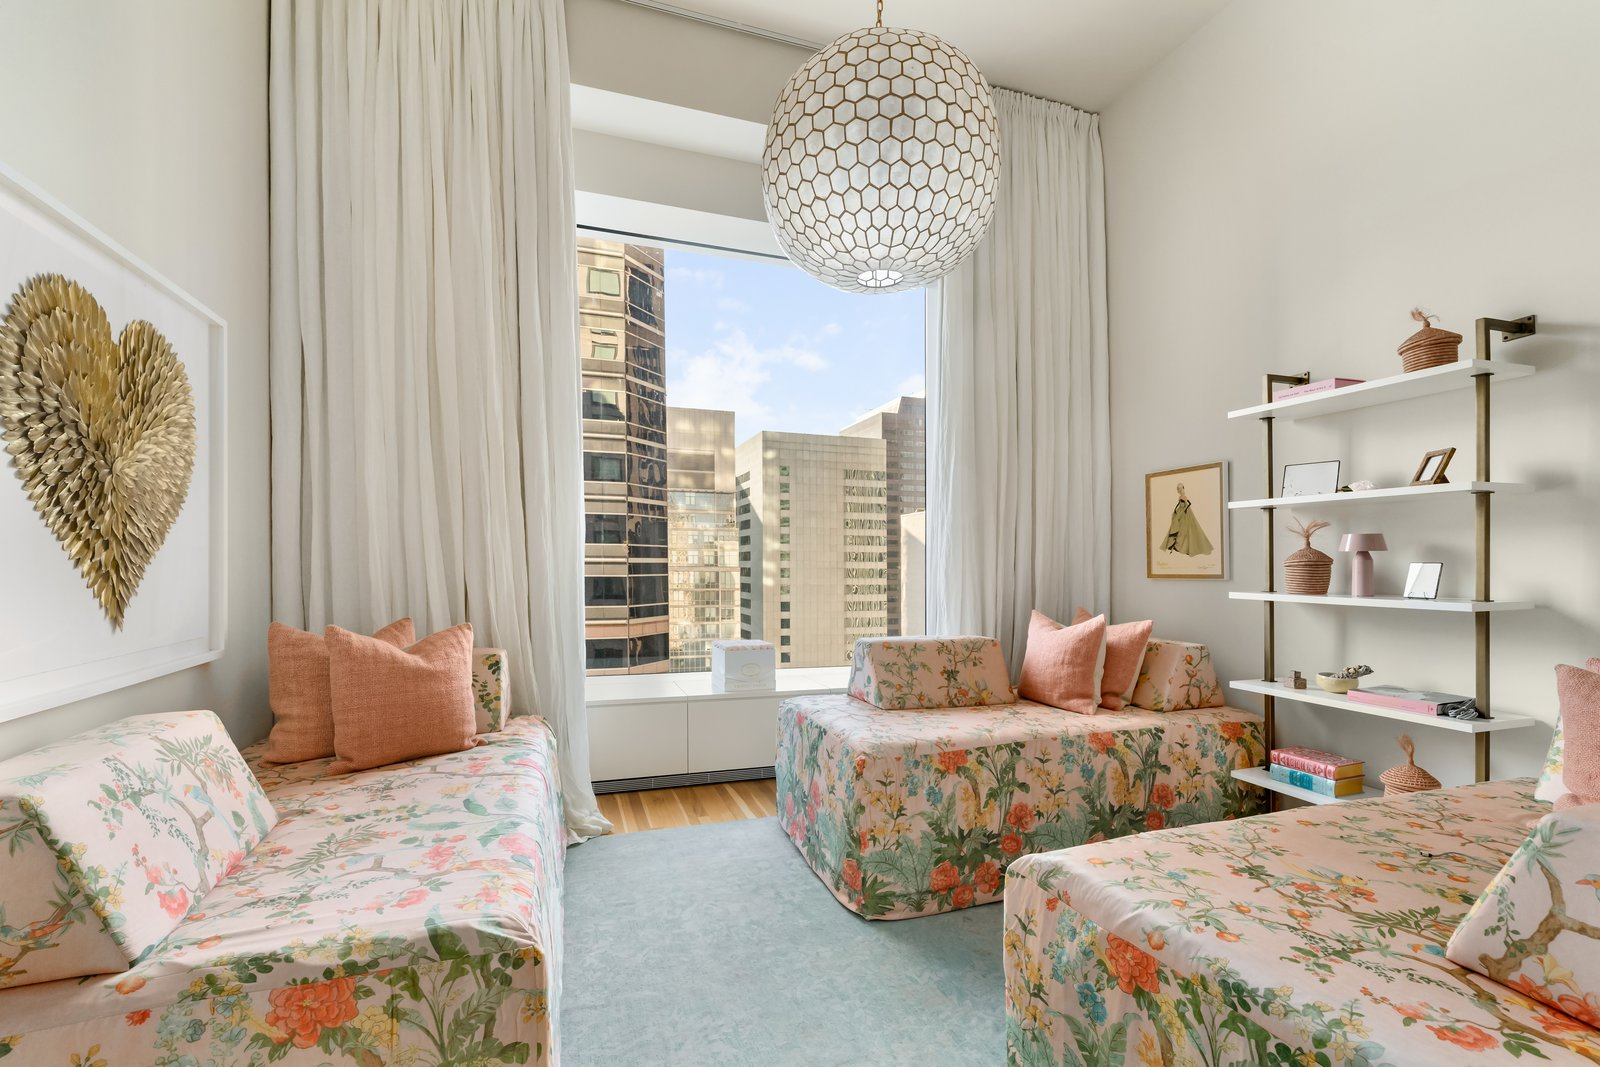 J.Lo and A-Rod's 432 Park Avenue apartment bedroom